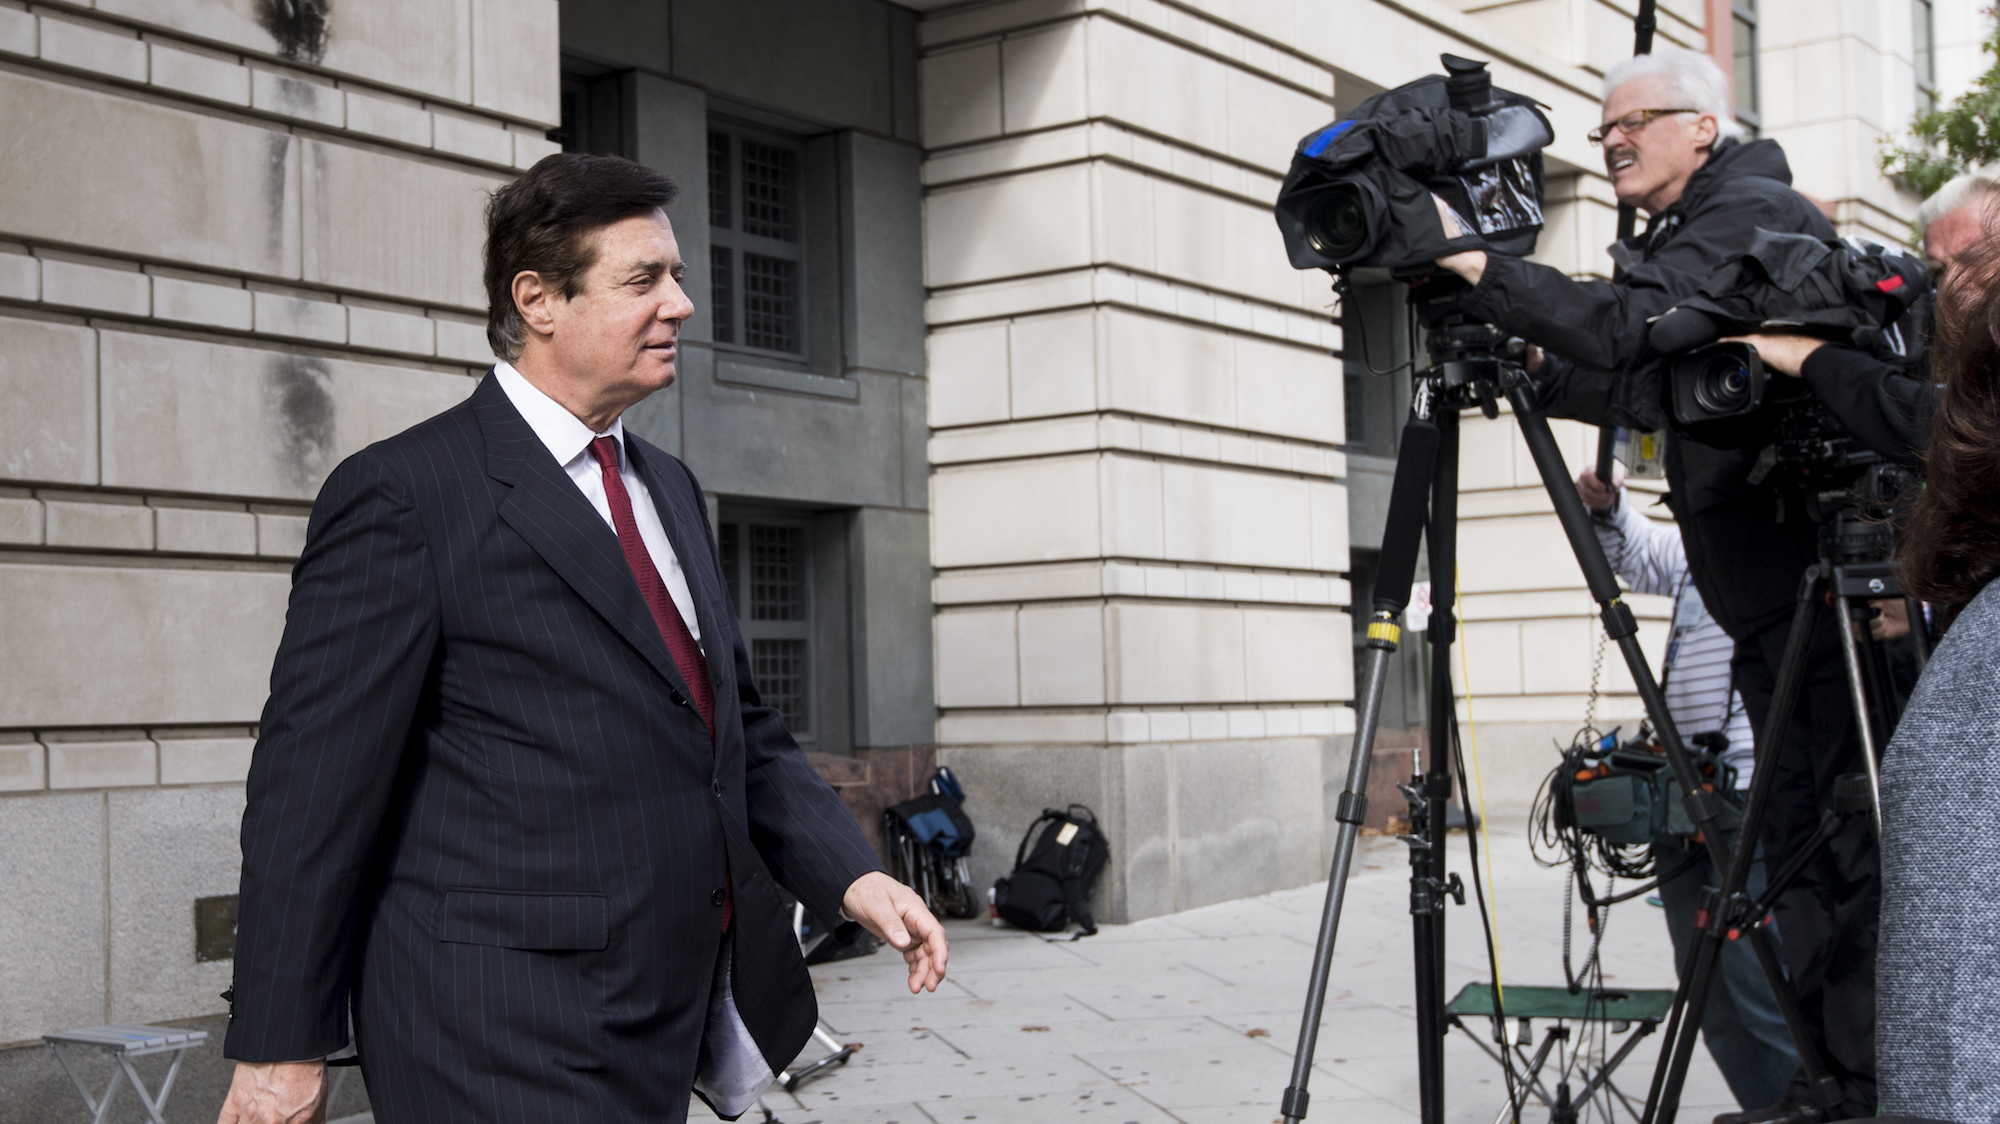 Paul Manafort heads to jail after judge faults witness tampering